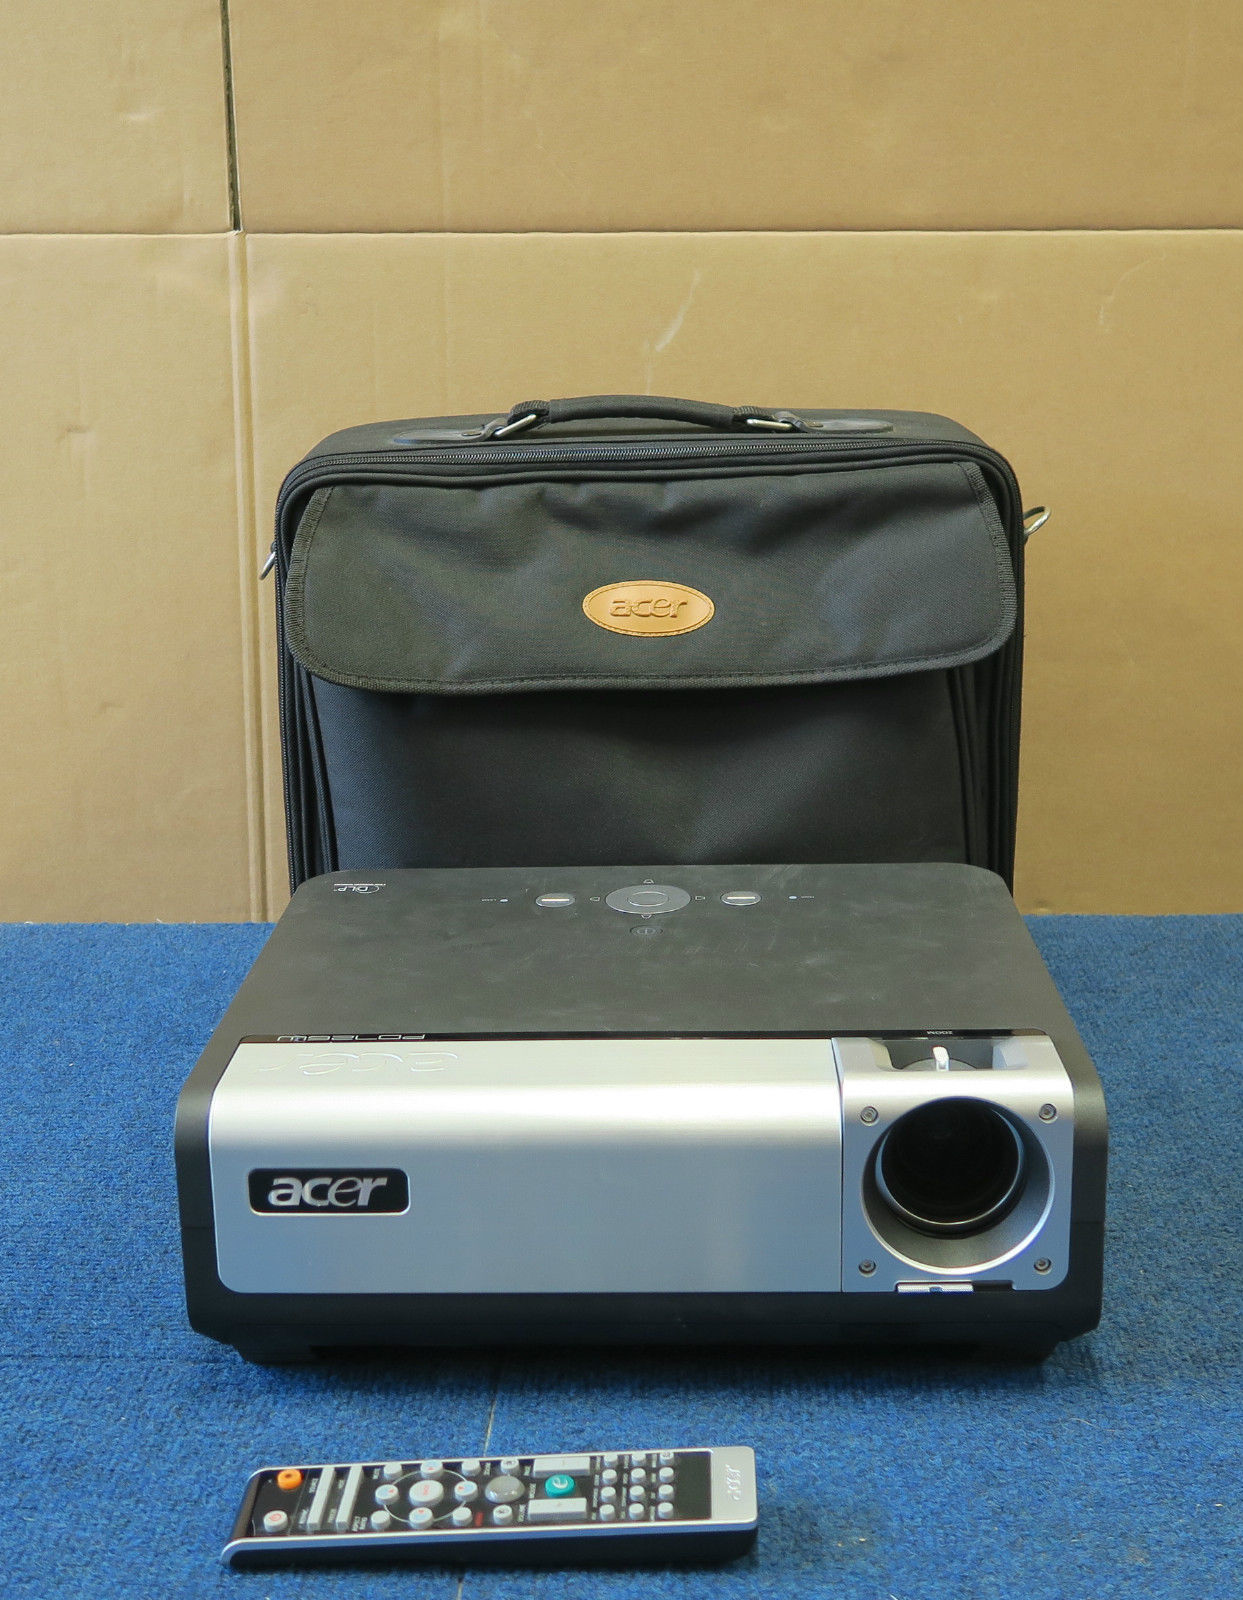 ACER PD726W PROJECTOR WINDOWS 7 DRIVERS DOWNLOAD